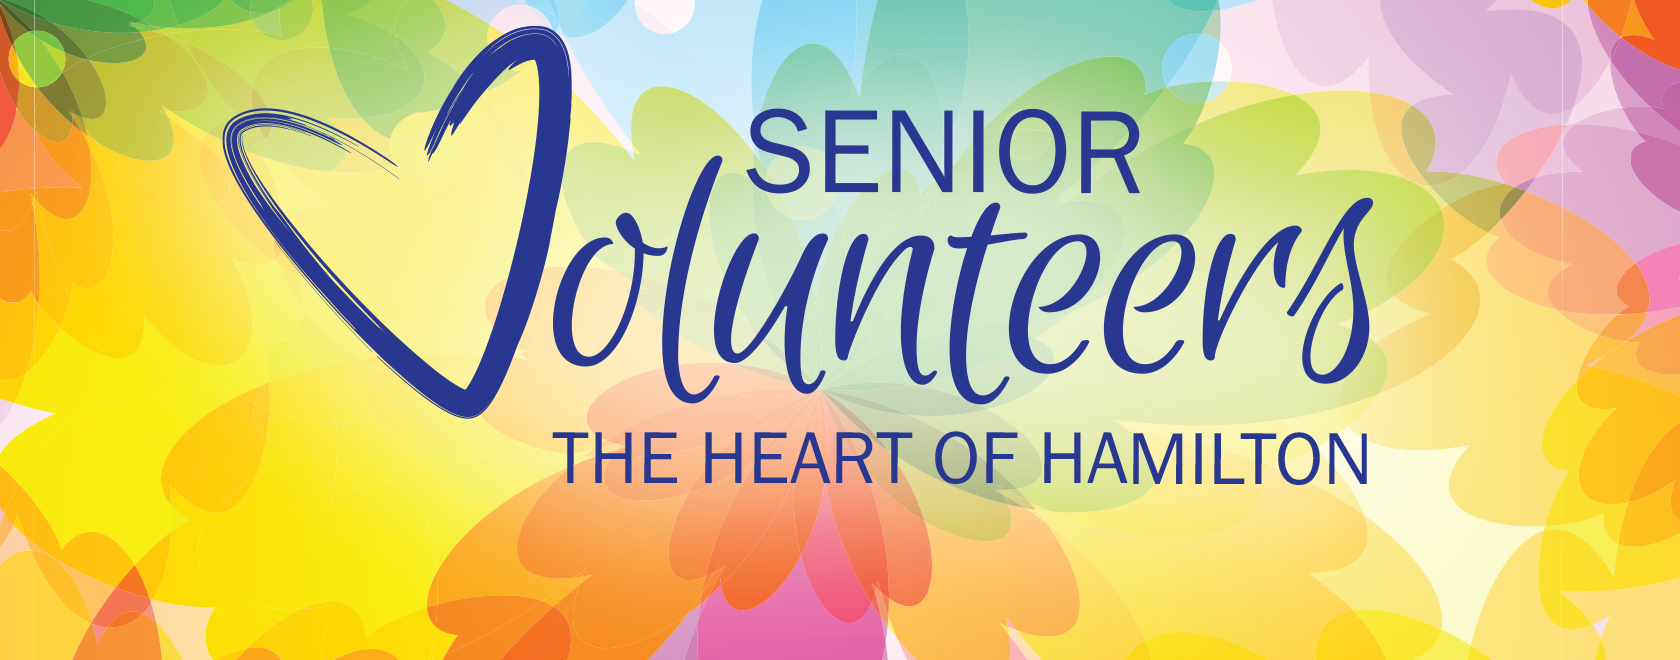 Senior Volunteers - The Heart of Hamilton